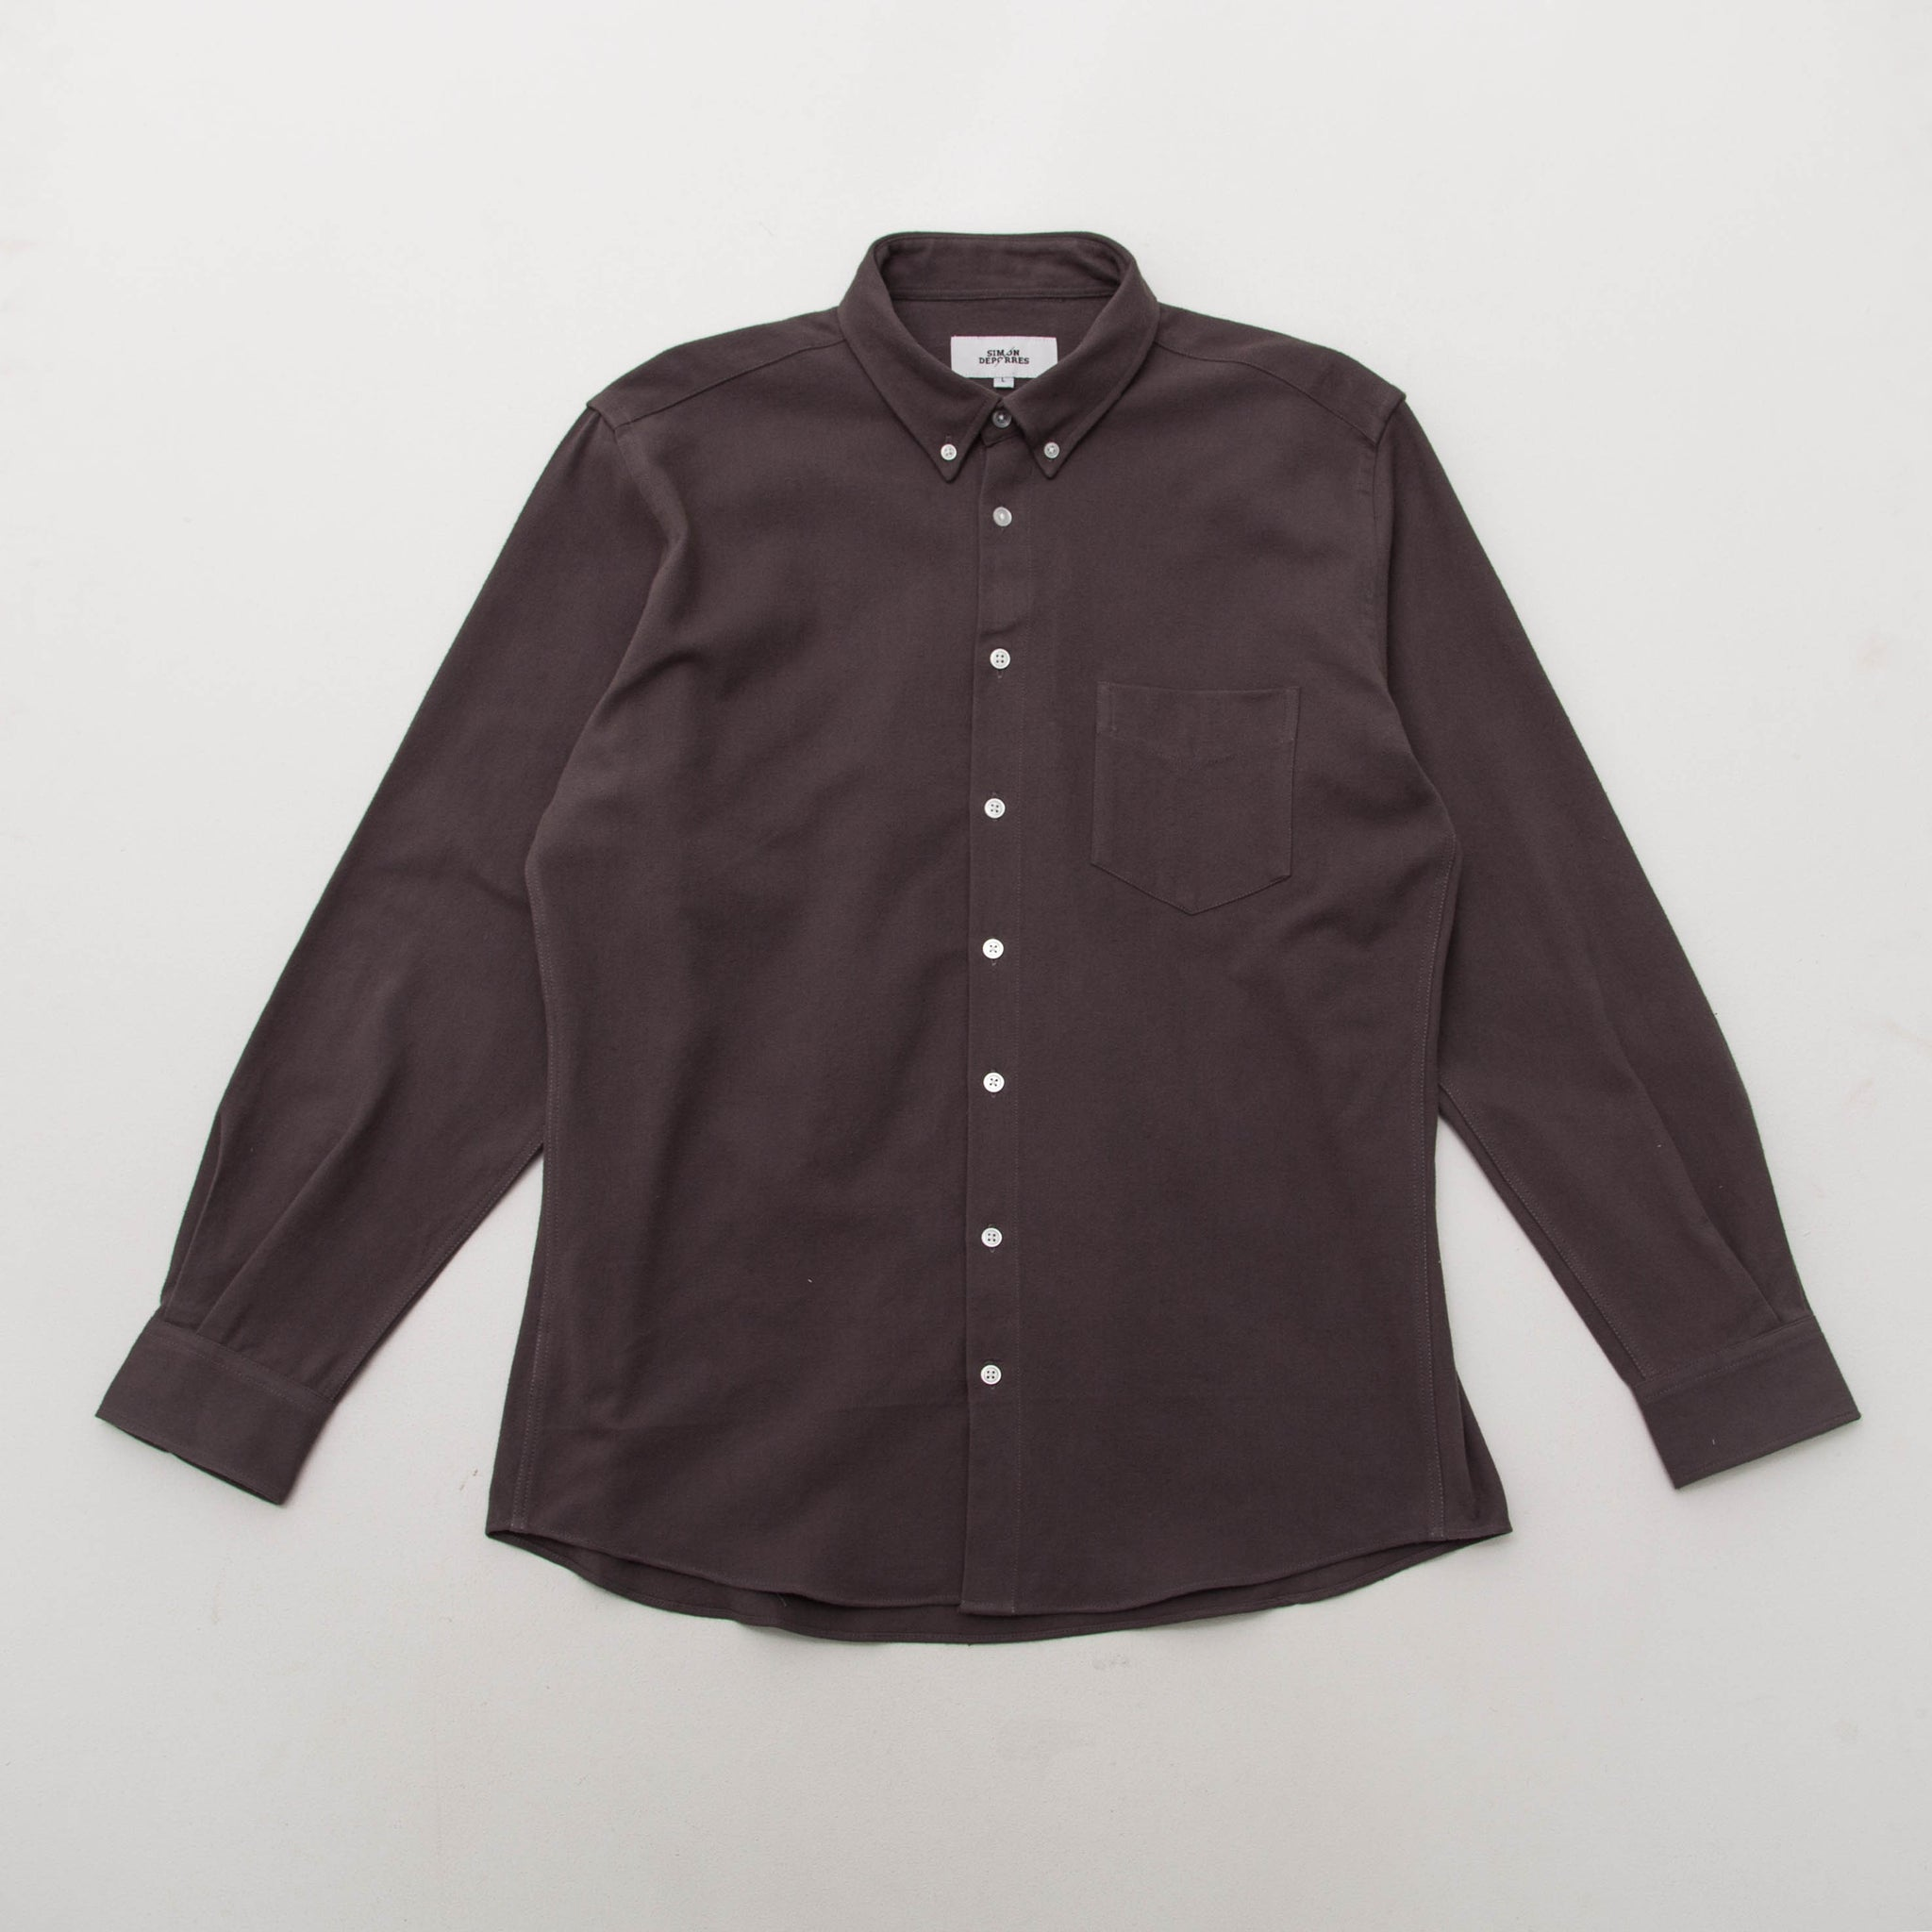 Simon Deporres Inventory Shirt - Grey - Front | AStore